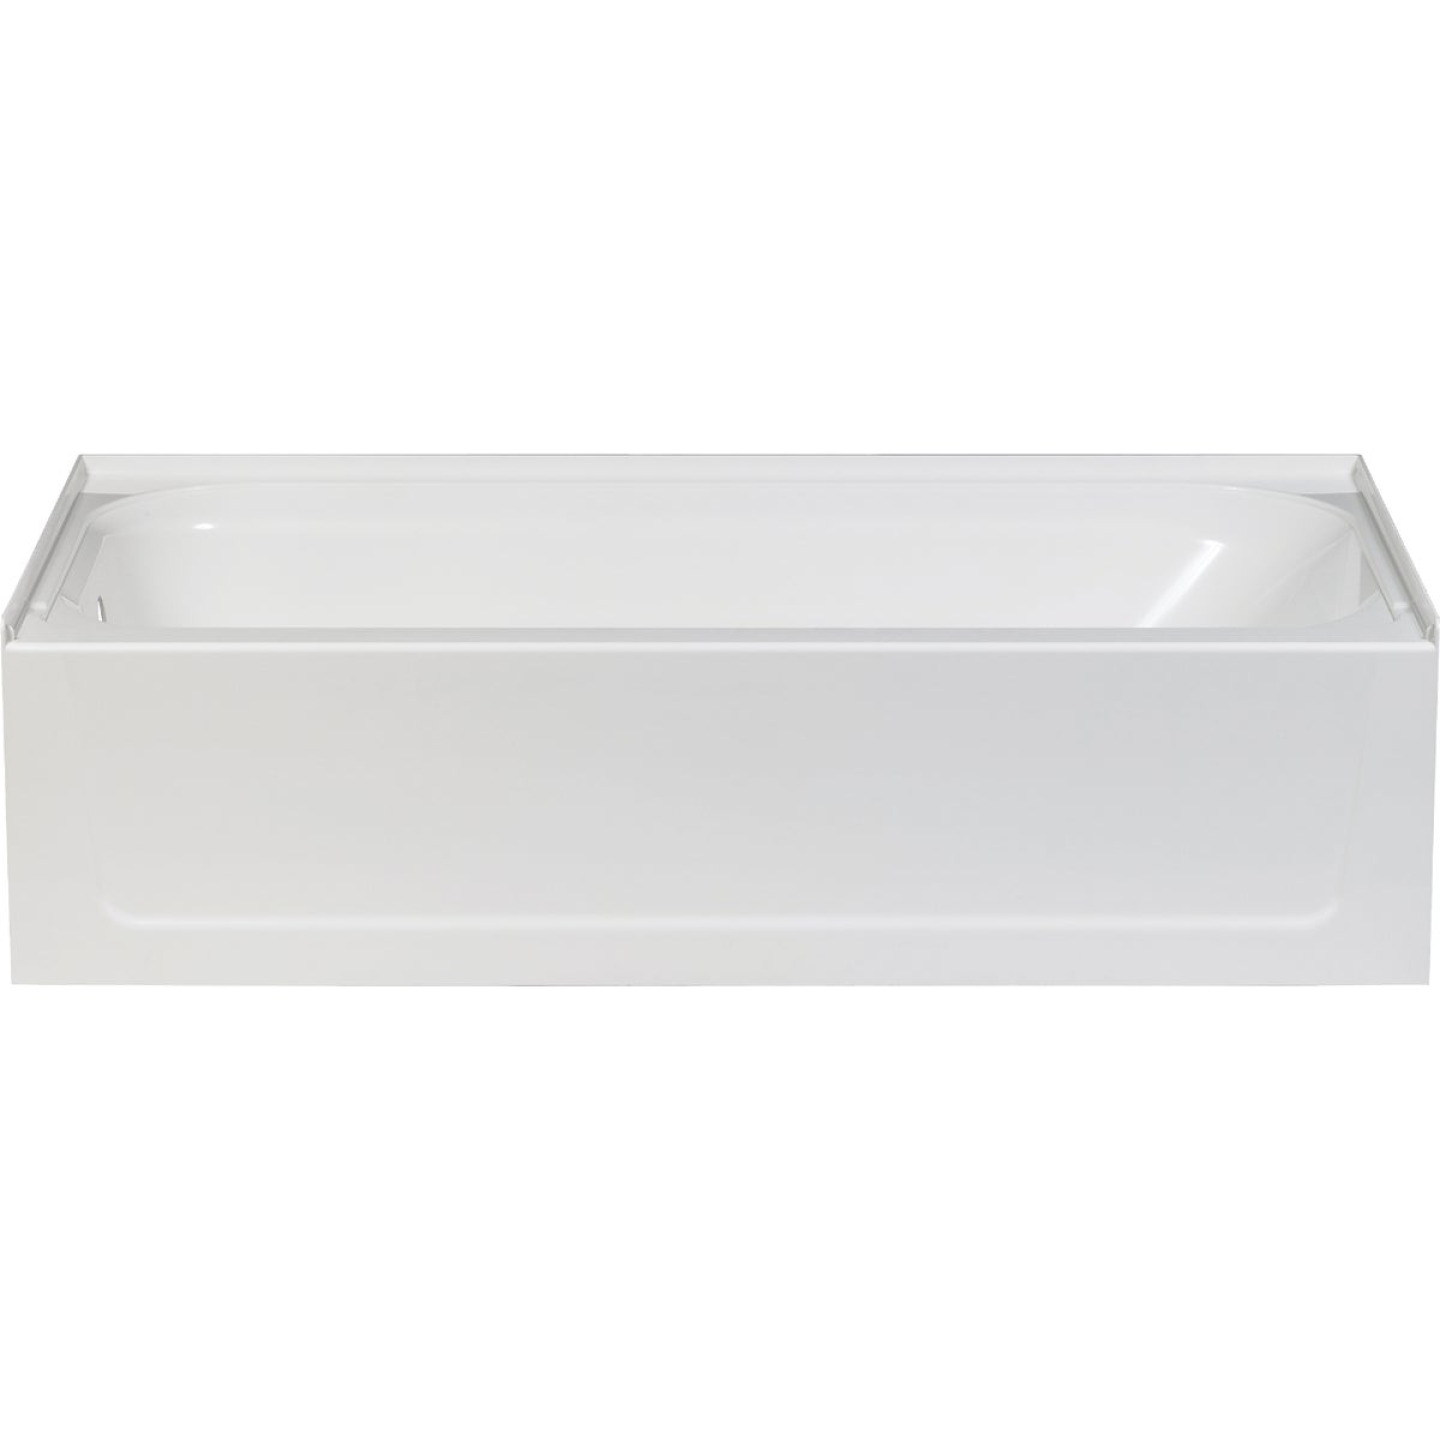 Mustee Topaz 60 In. L x 30 In. W x 16-1/2 In. D Left Drain Bathtub in White Image 1